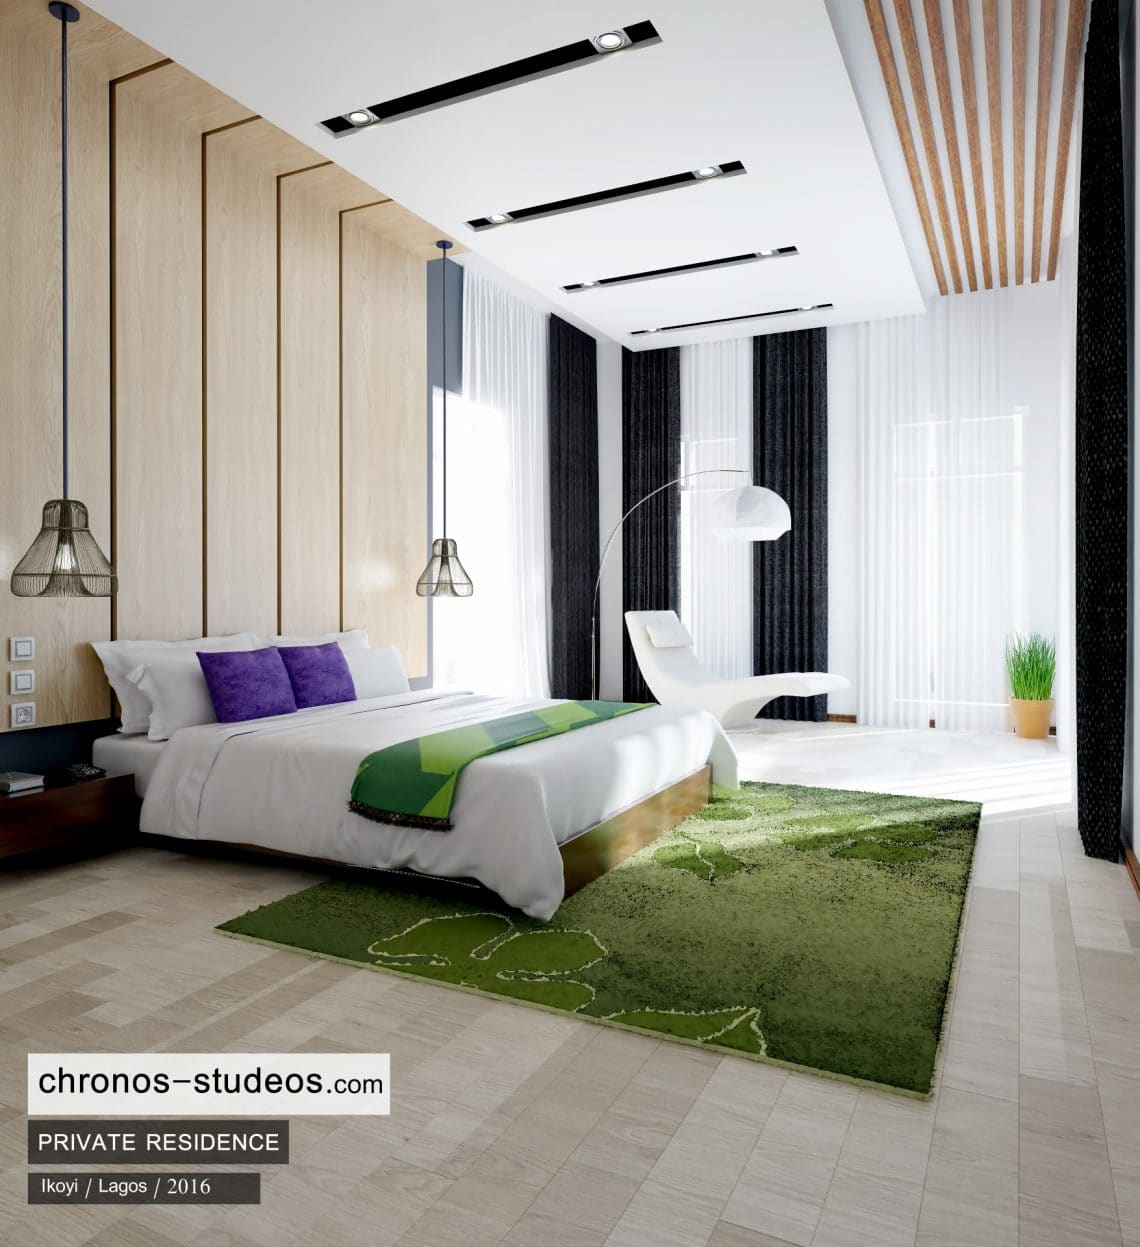 Bedroom interior design 3d rendering lagos nigeria chronos for Interior decoration lagos